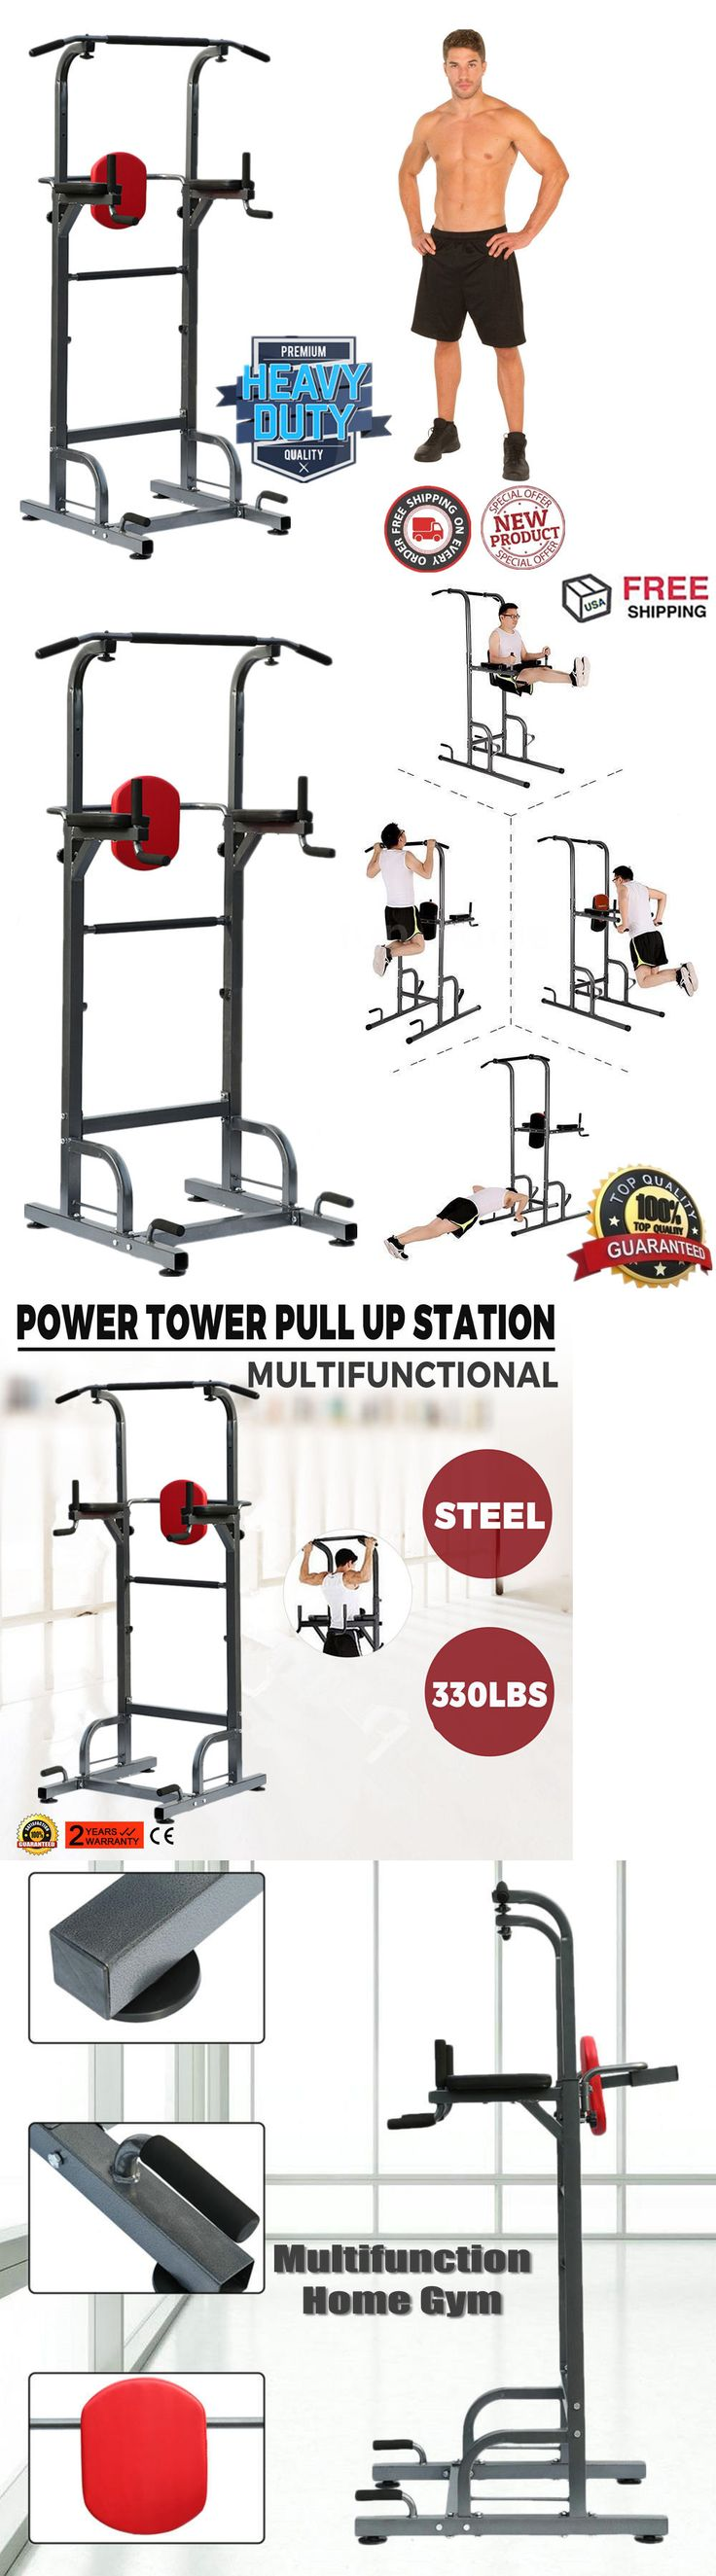 Home Gyms 158923: Dip Station Chin Up Tower Rack Pull Up Weight Stand Bar Raise Workout Home Gym -> BUY IT NOW ONLY: $97.95 on eBay!